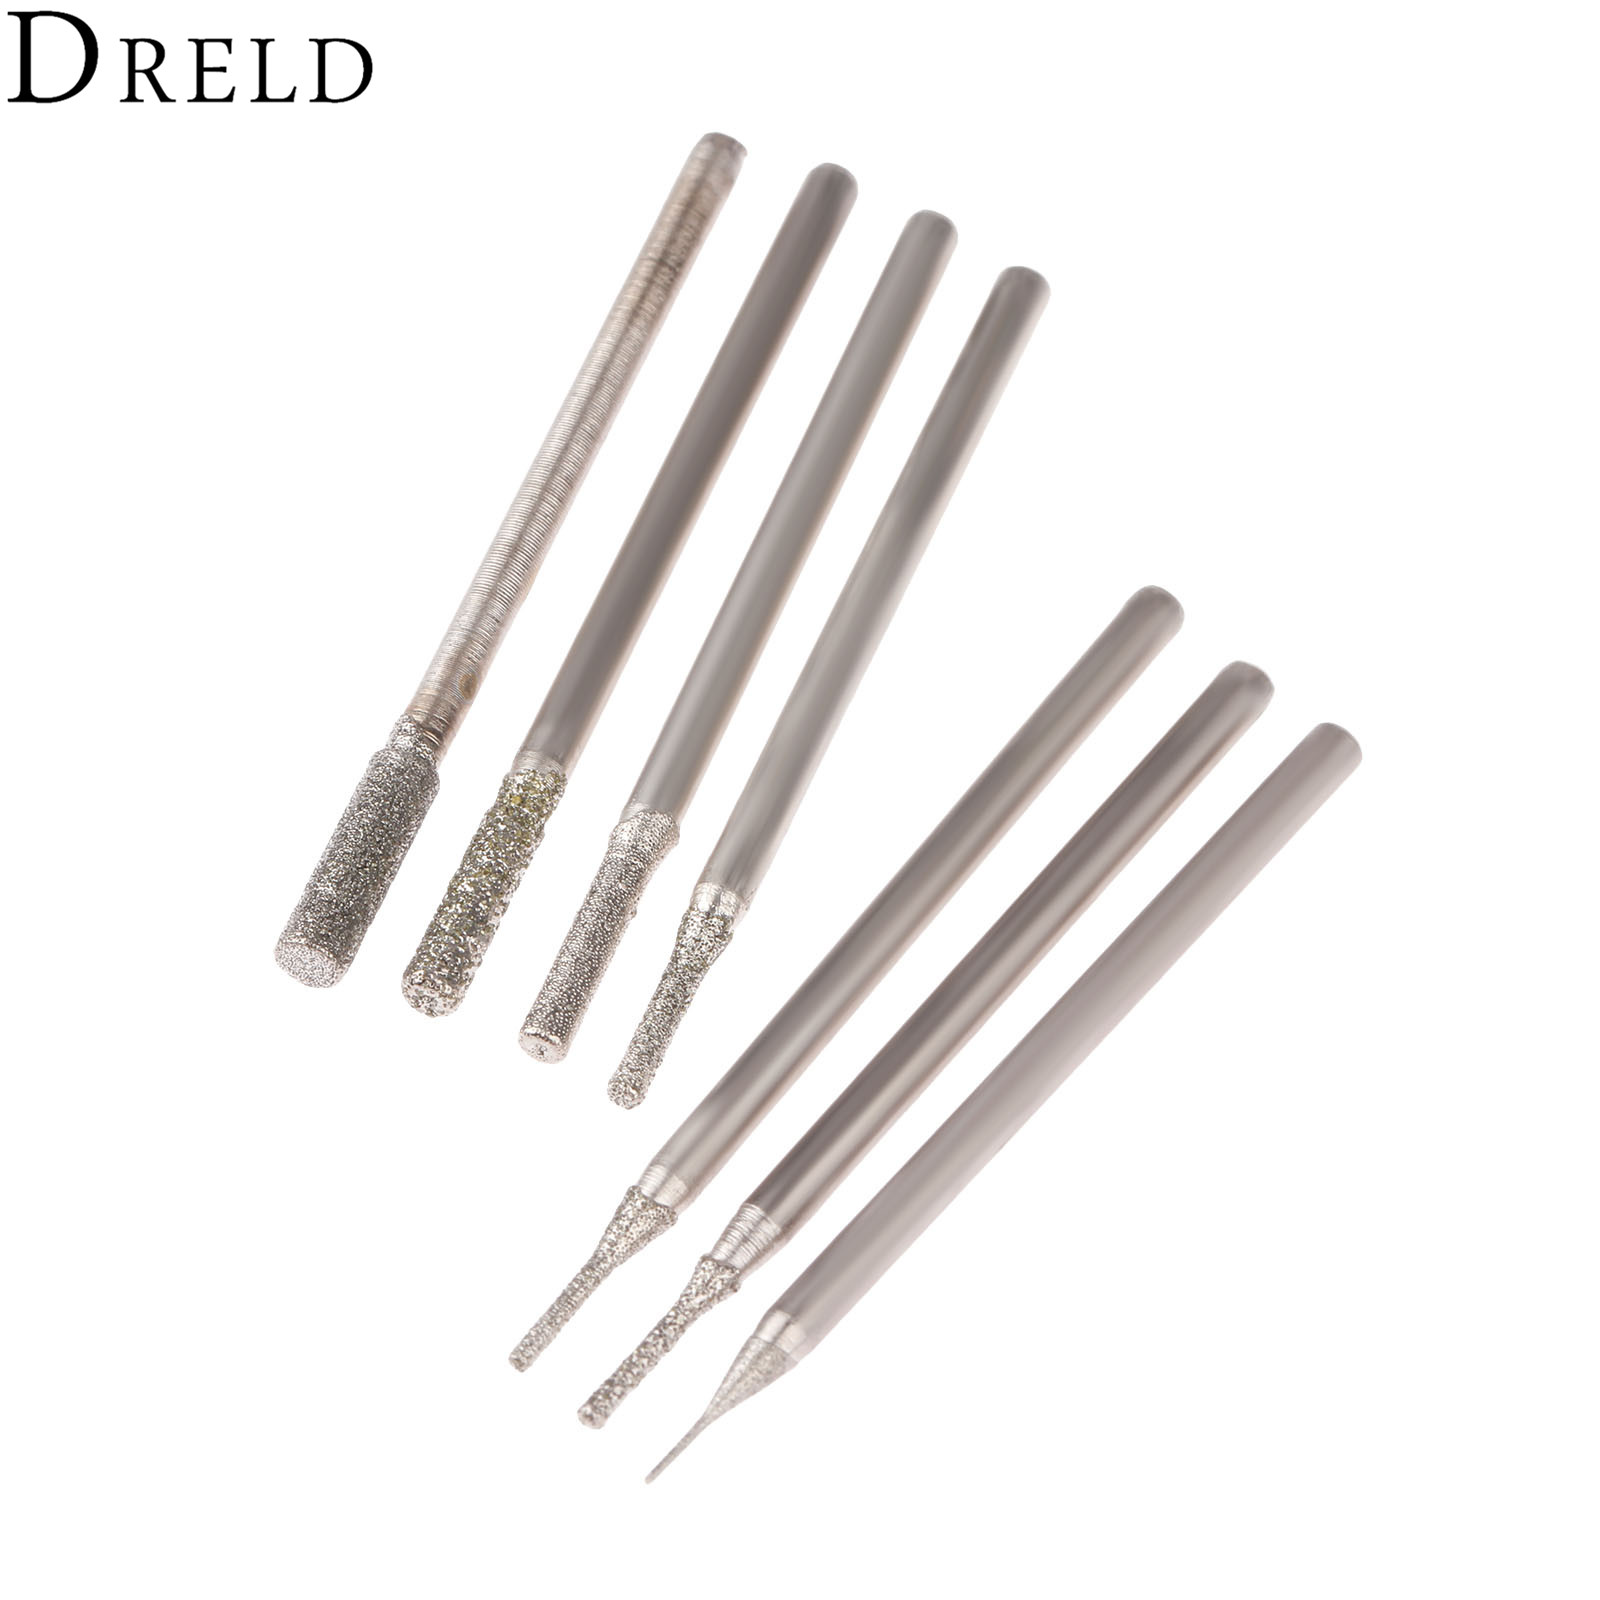 DRELD 7Pcs Dremel Accesories 2.35mm Shank Cylindrical Diamond Grinding Head Stone Jade Amber Carving Polishing Engraving Tools